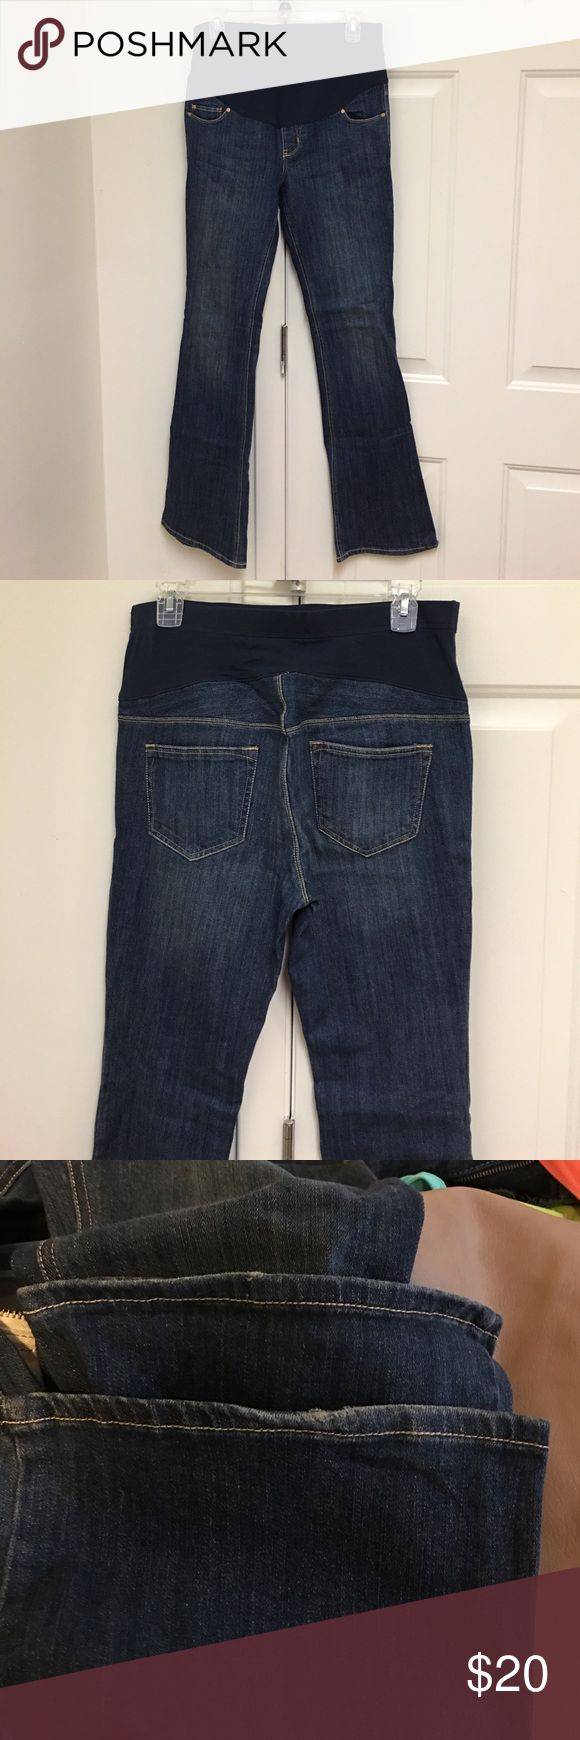 Old navy maternity jeans Flare maternity jeans with full panel. Very comfortable. Slight distress on bottom of the legs. Size 6 LONG Old Navy Jeans Flare & Wide Leg